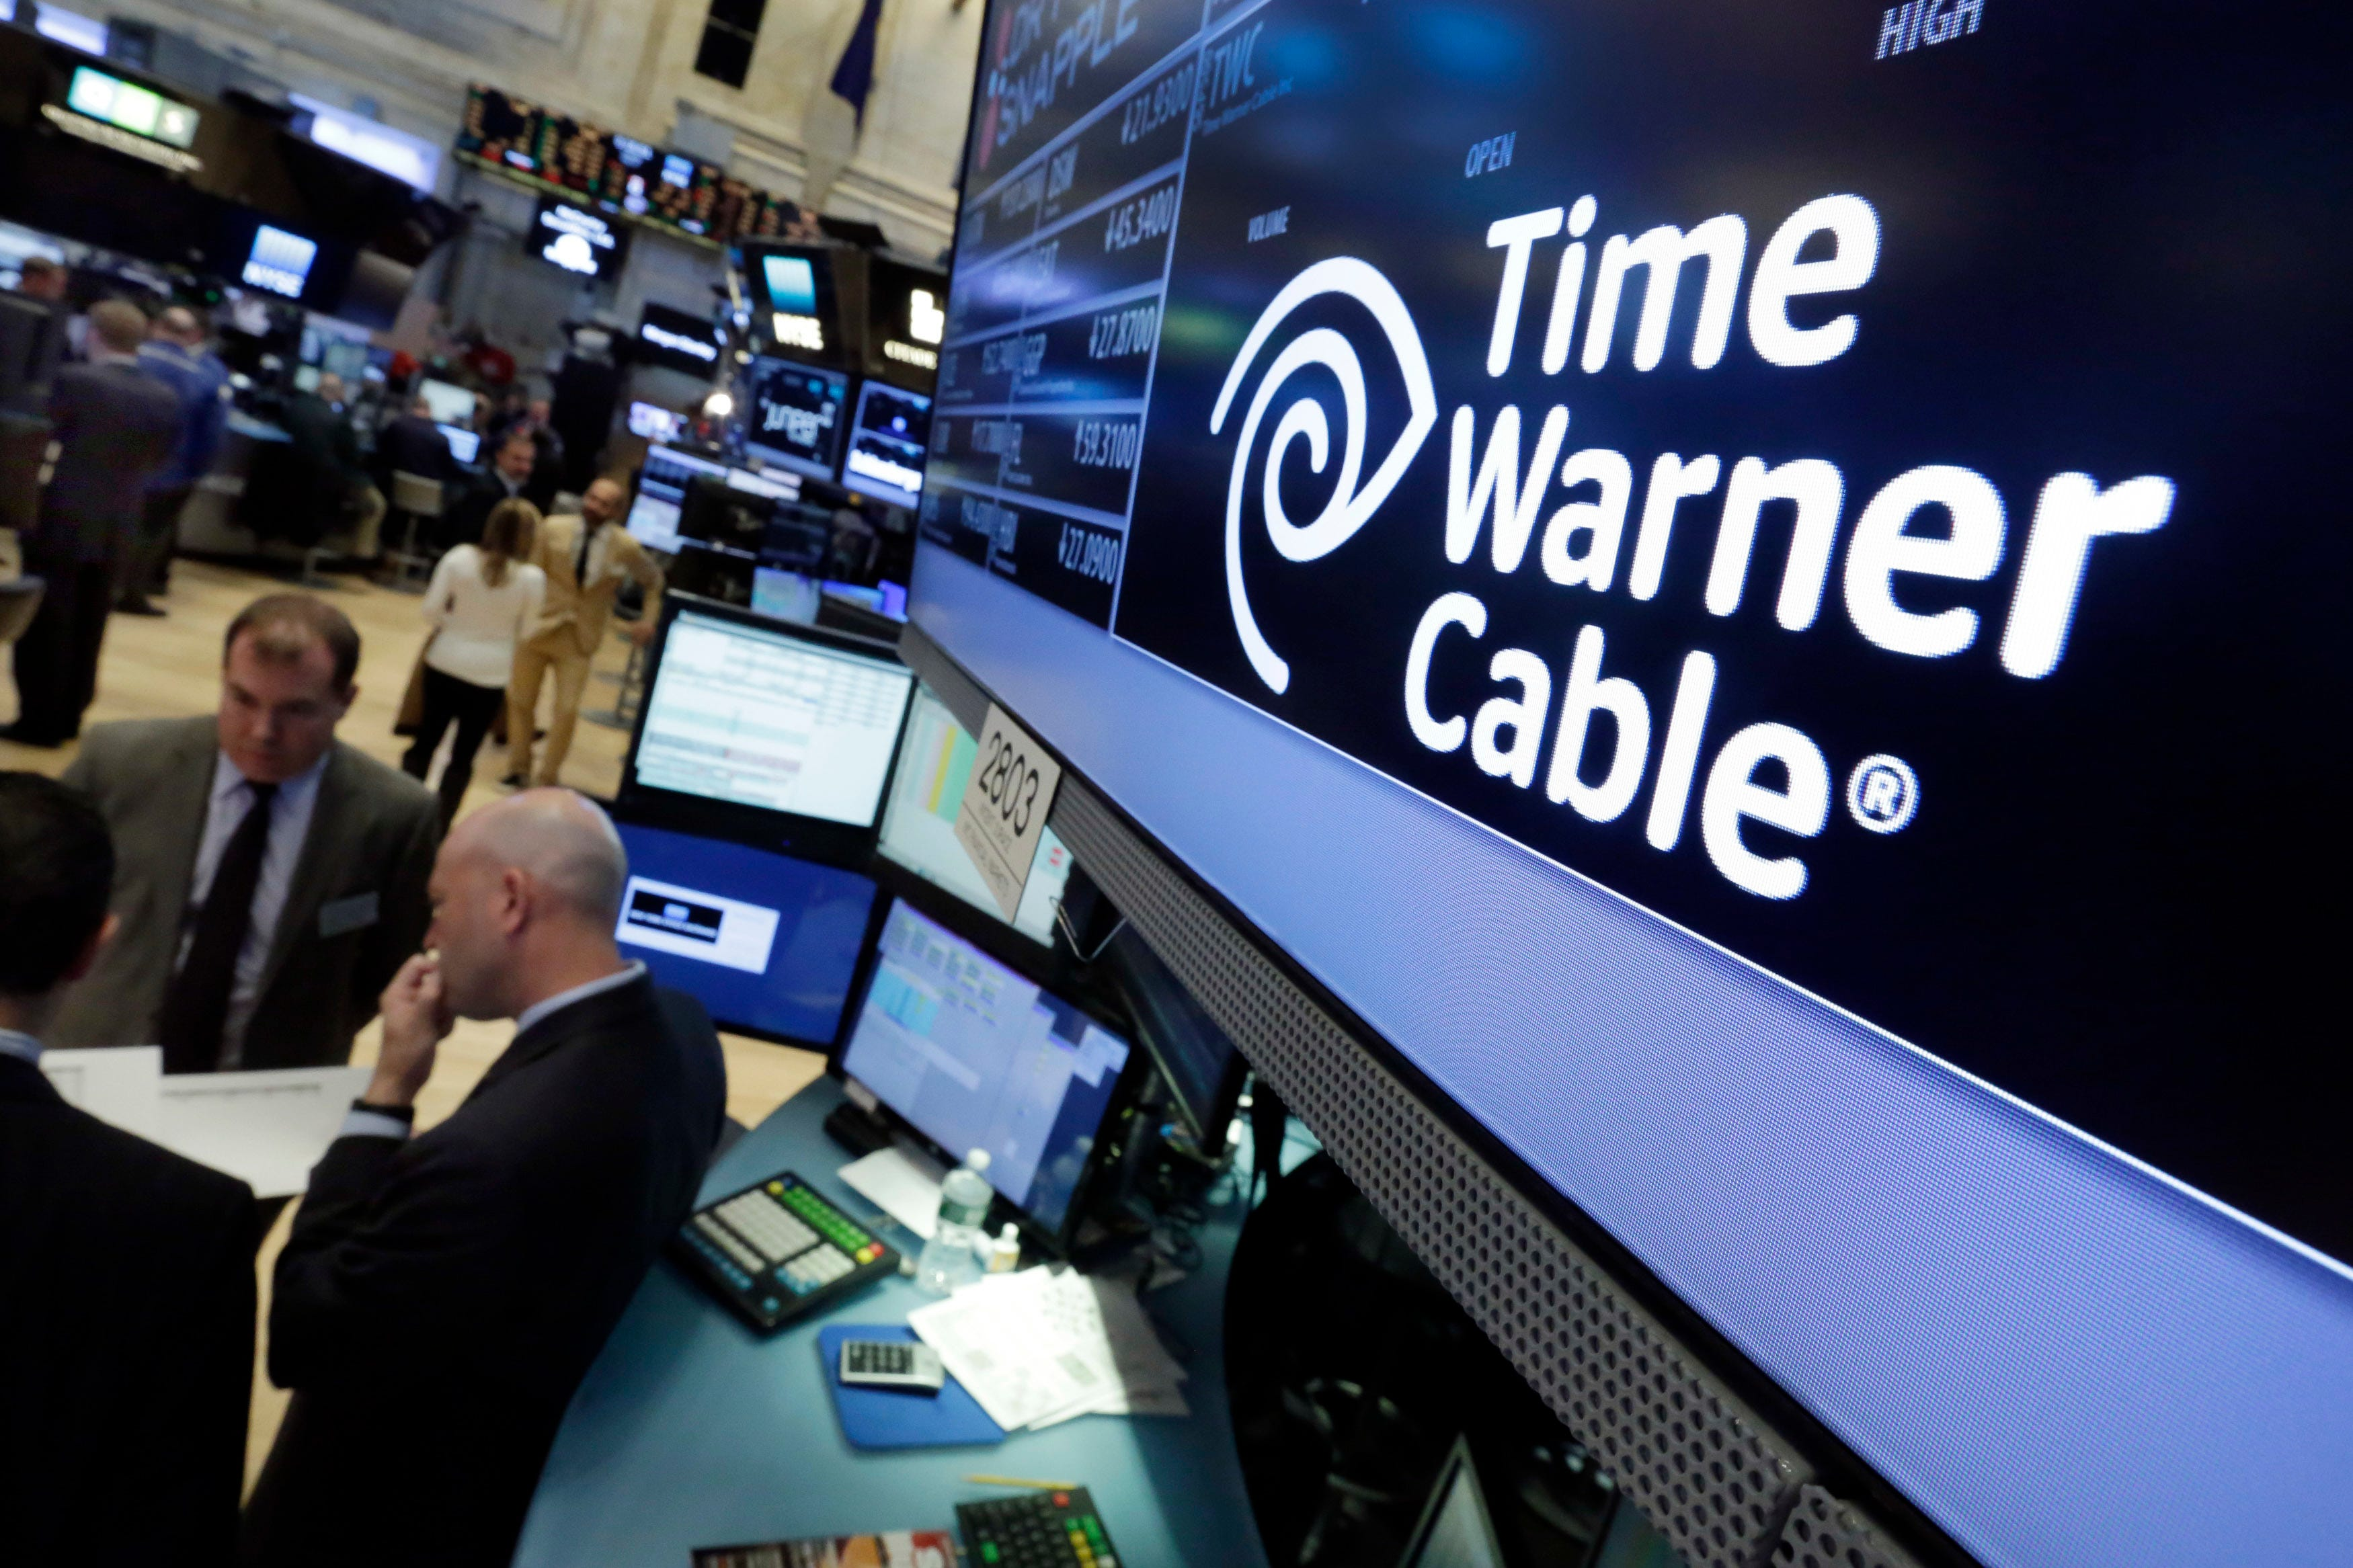 Time Warner Cable Support Texas: Probe calls Time Warner Cable7s Internet speeds 7abysmal7rh:usatoday.com,Design